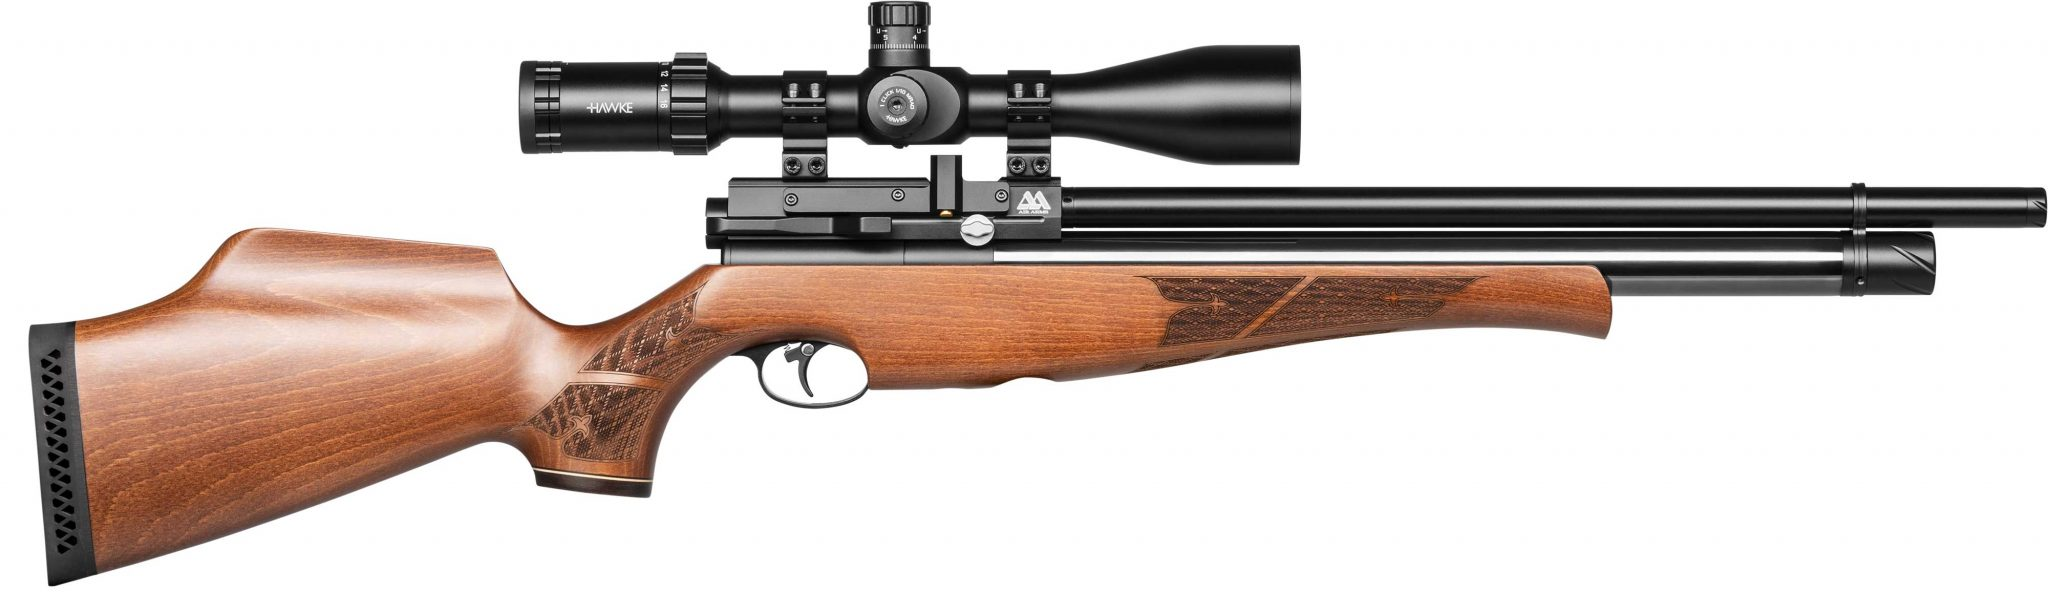 Air Arms S510 XS